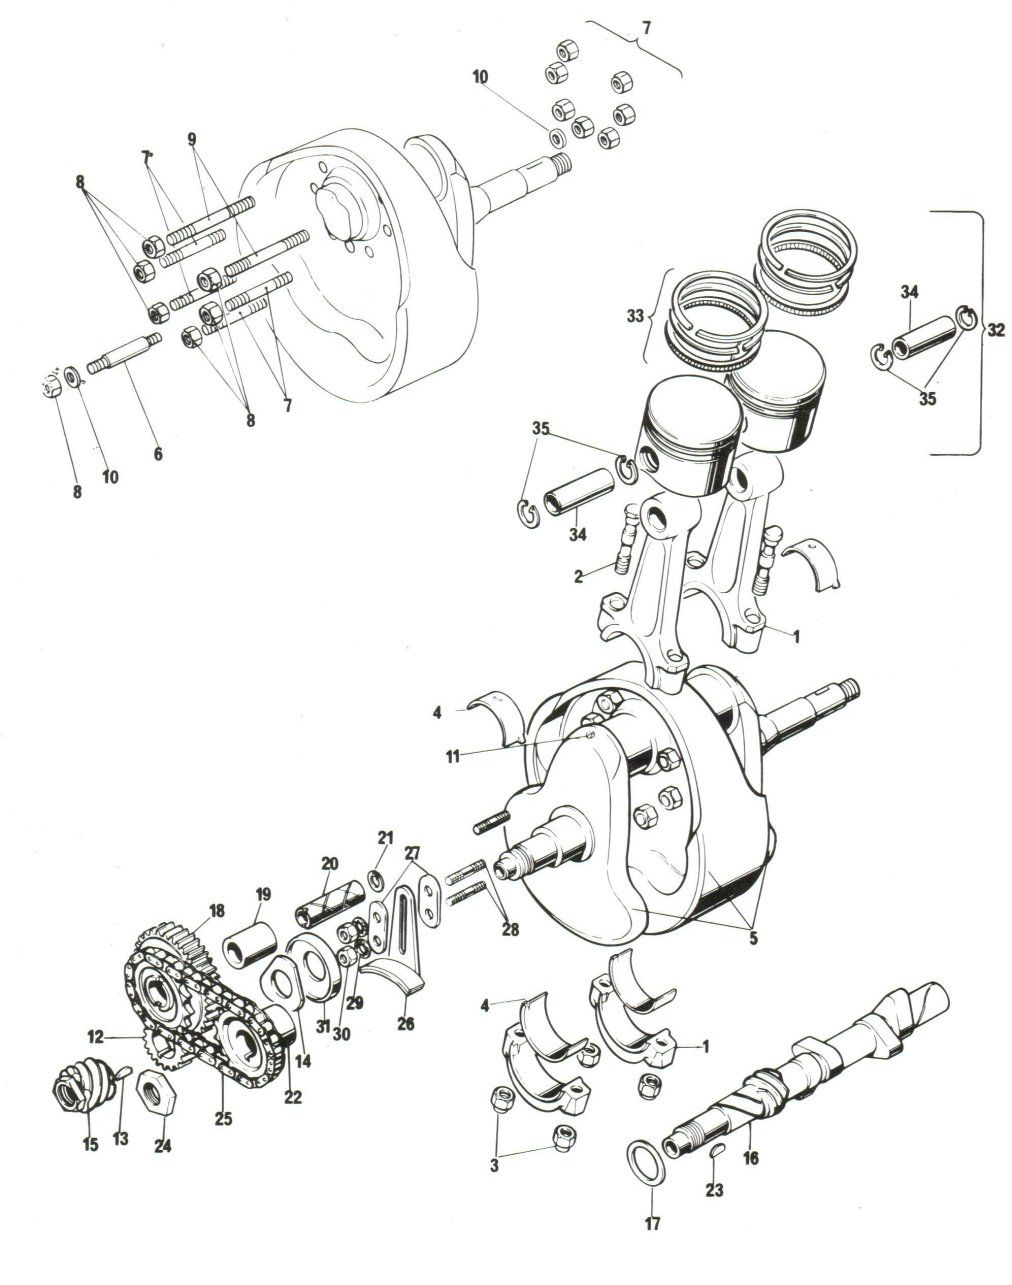 hight resolution of piston exploded view